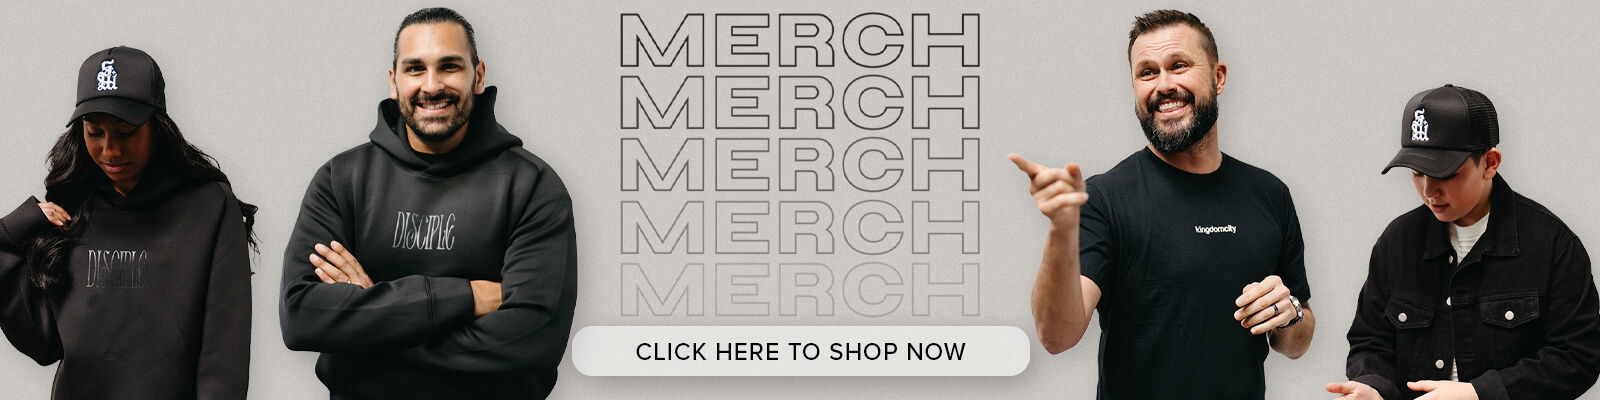 Get your limited edition merch at our Online Store!